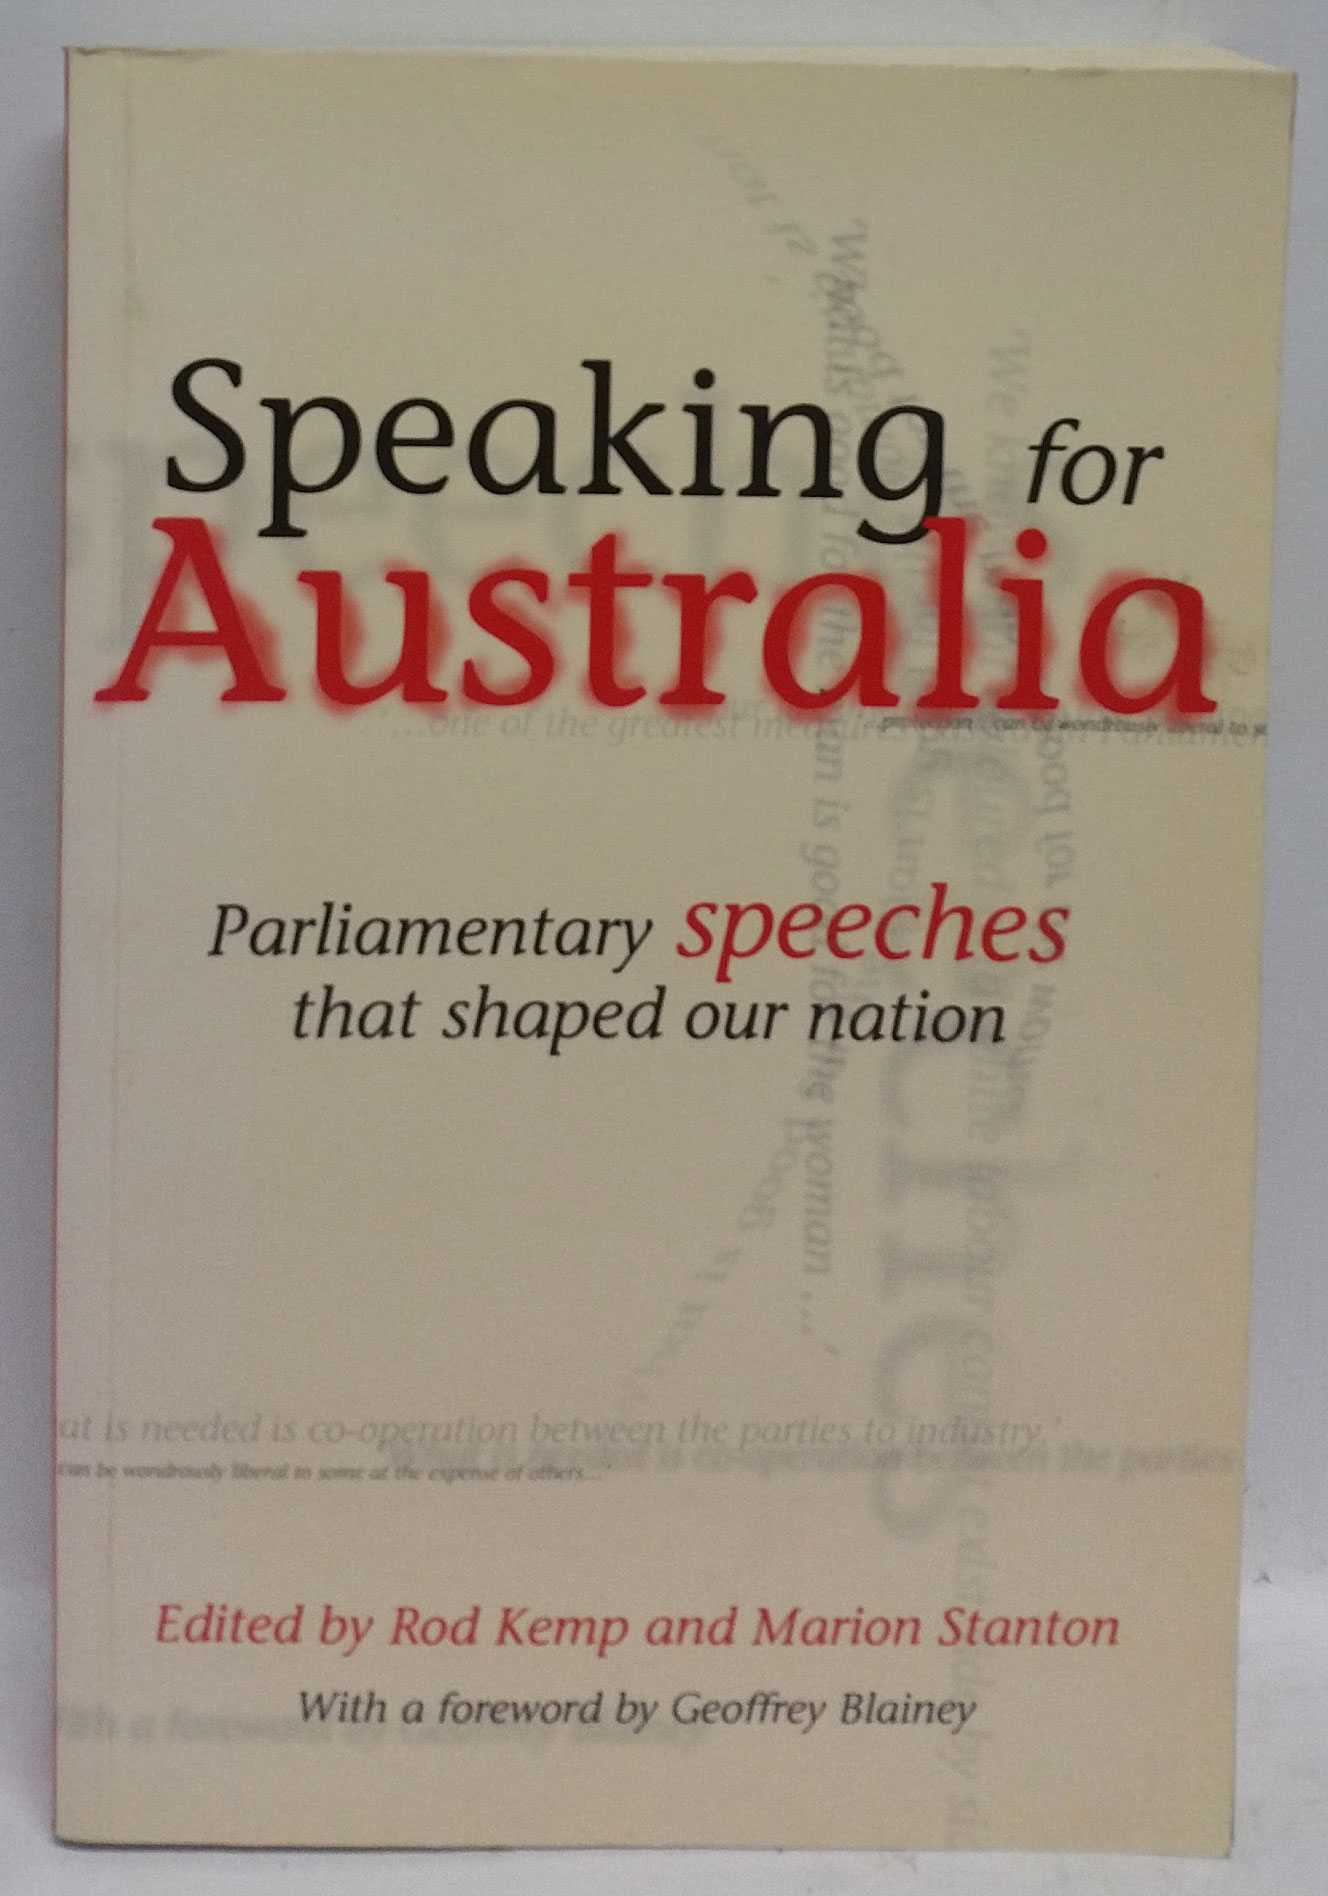 ROD KEMP; MARION STANTON - Speaking for Australia: Parliamentary speeches that shaped our nation